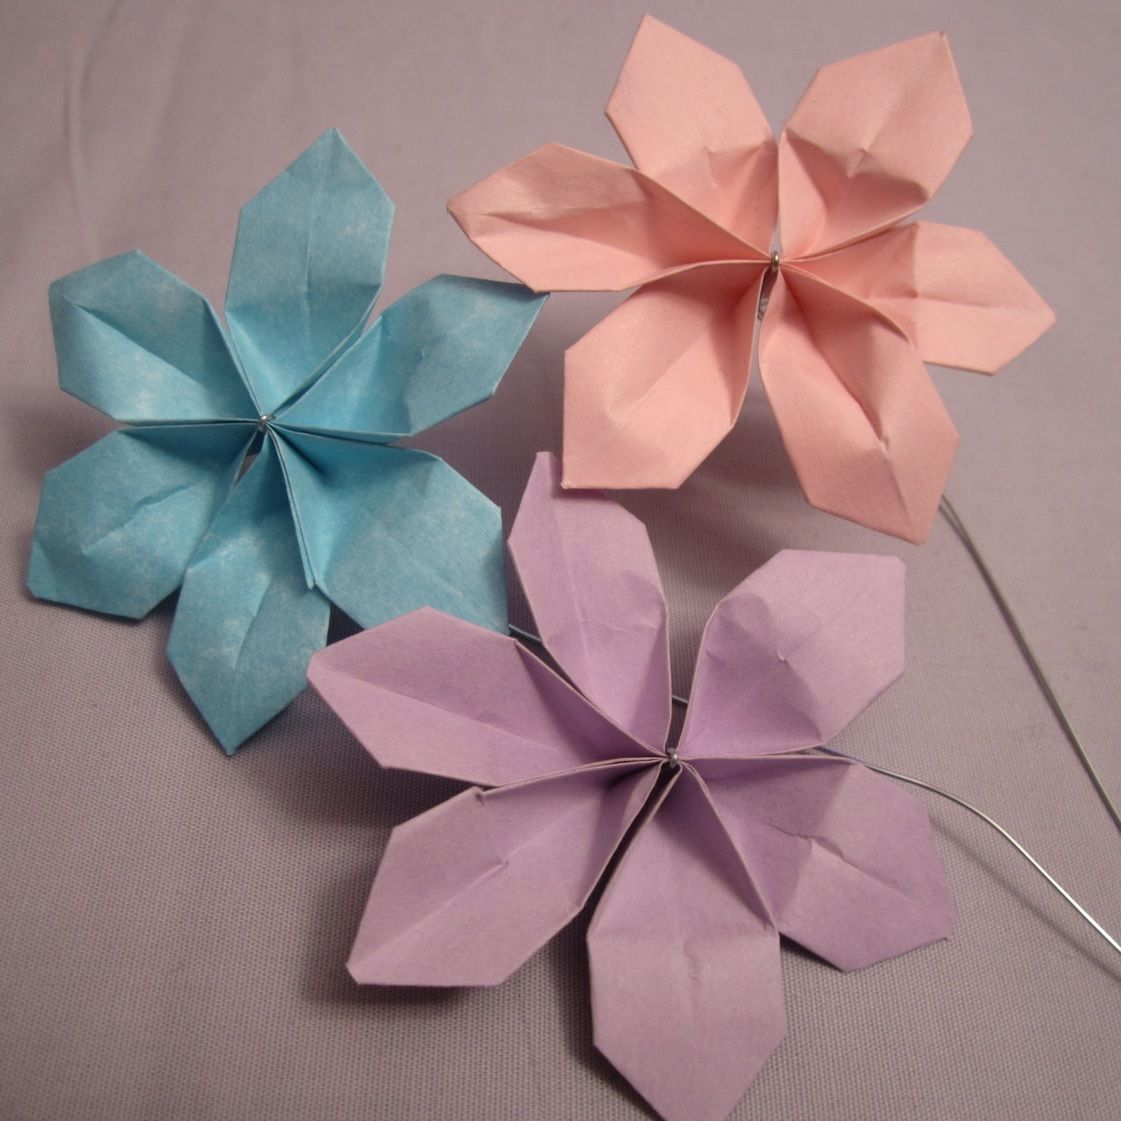 Sweet and easy diy paper flowers how to make paper flowers you can use sticky notes origami paper or another kind to make these diy paper flowers mightylinksfo